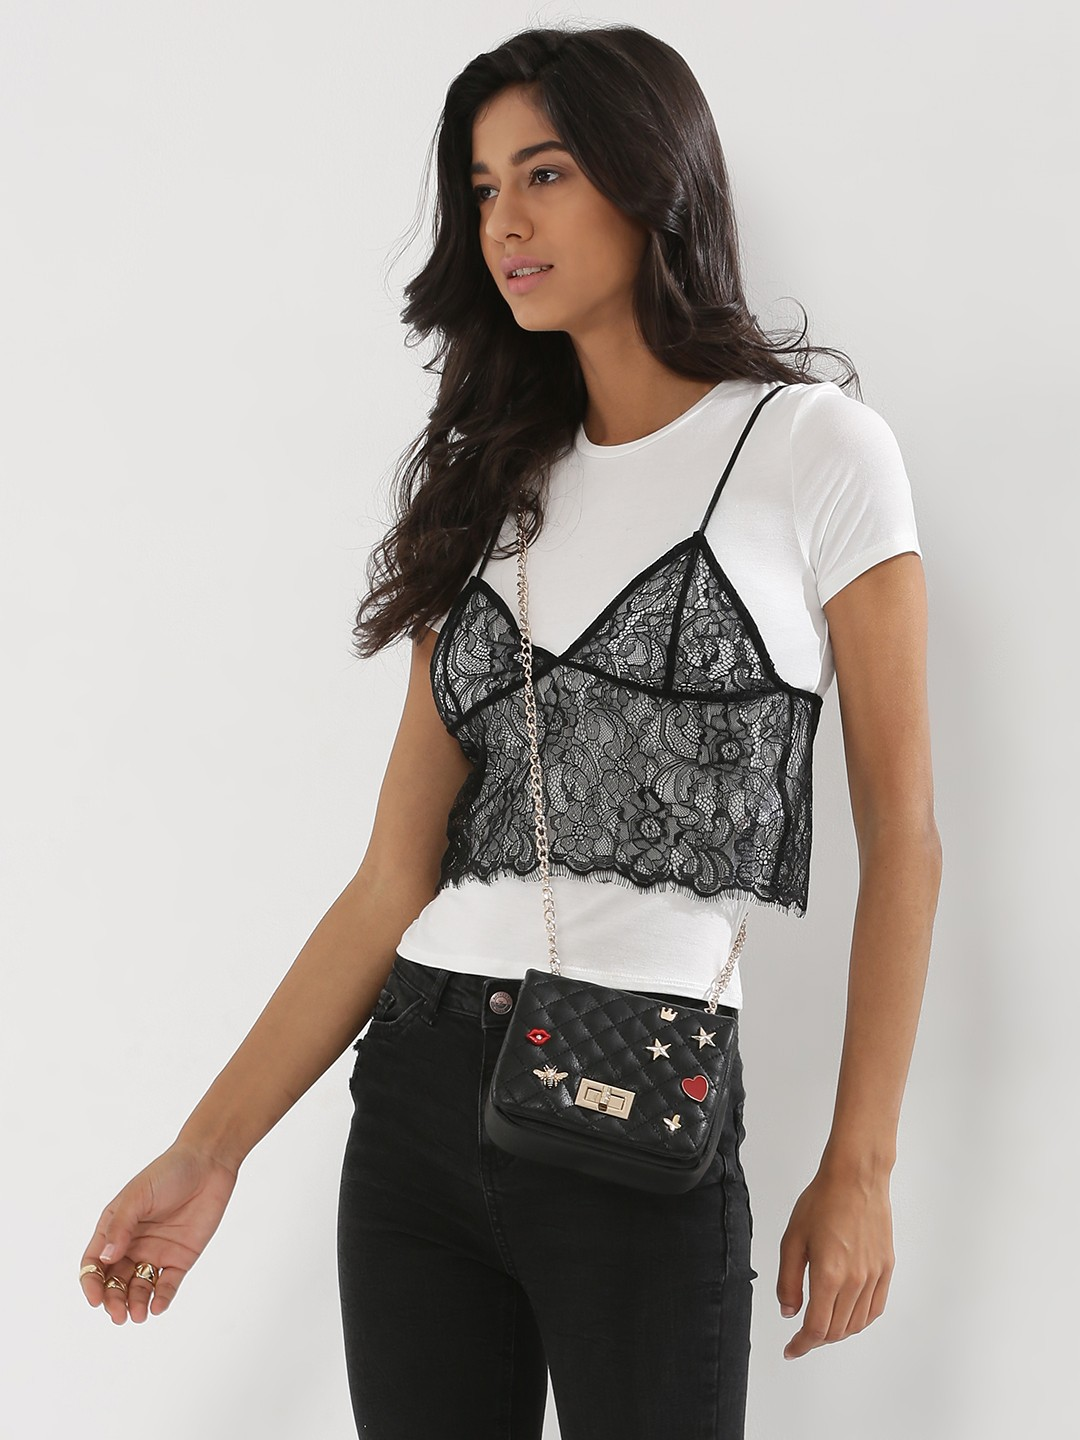 Black t shirt with lace - New Look Bralet Lace 2 In 1 T Shirt